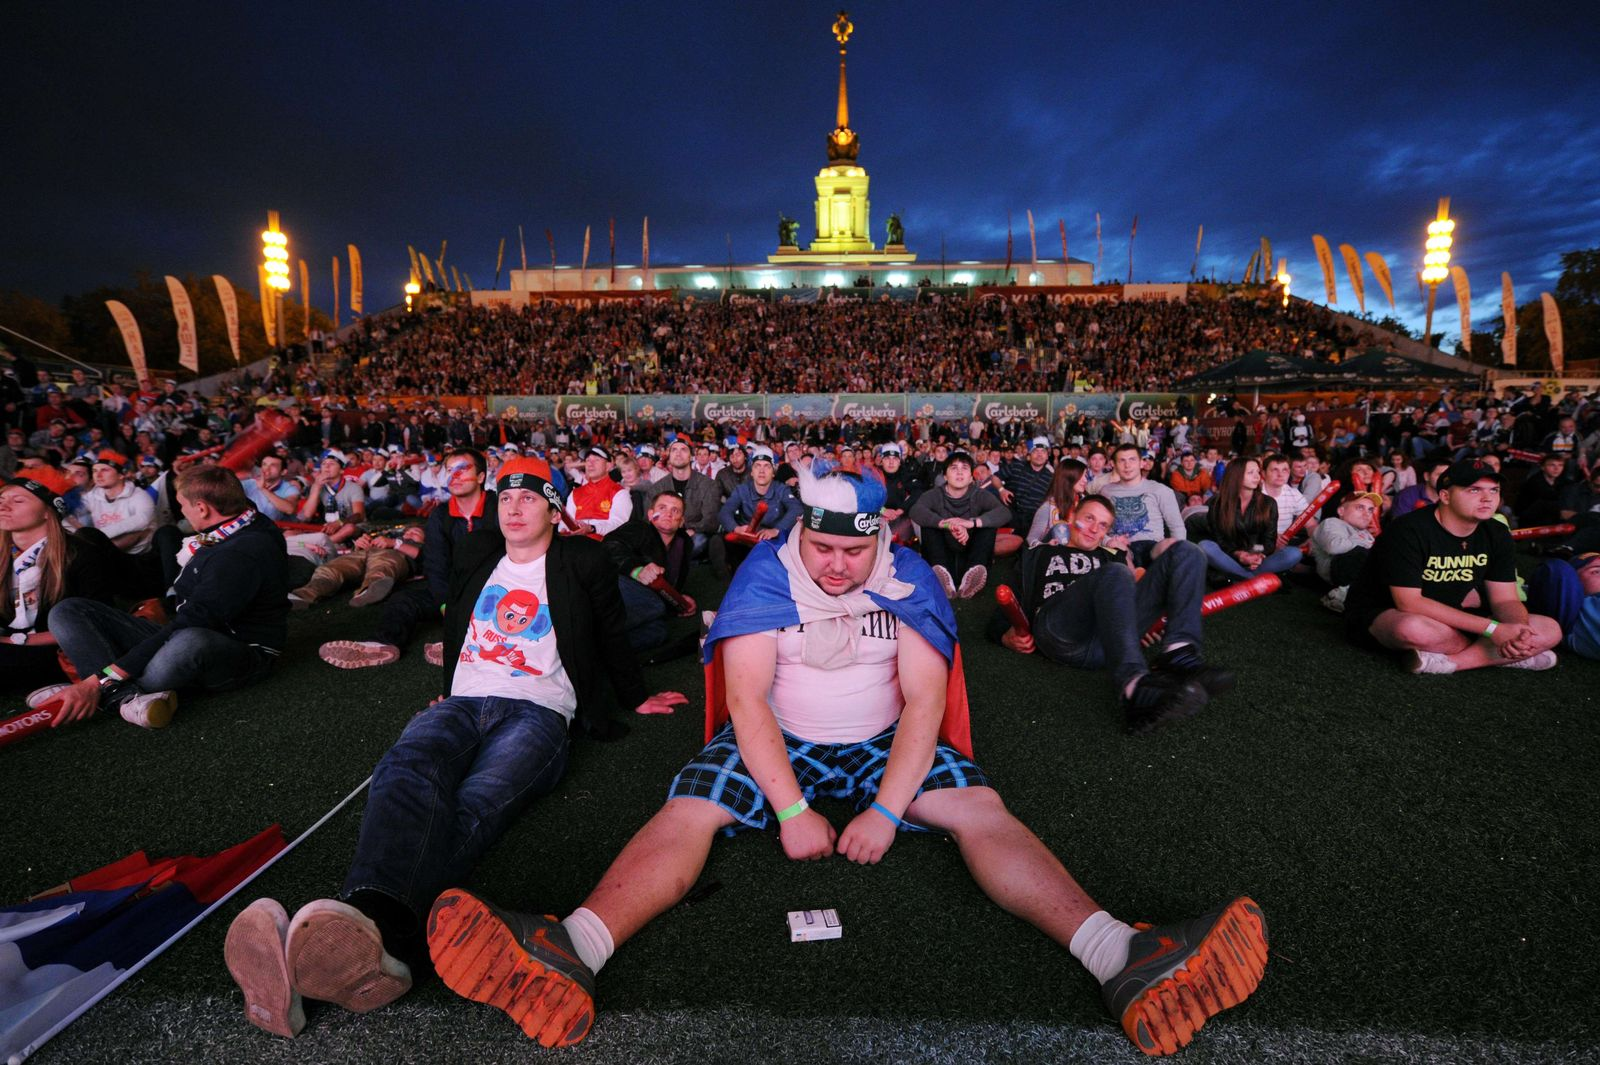 FBL-EURO-2012-RUS-SUPPORTERS